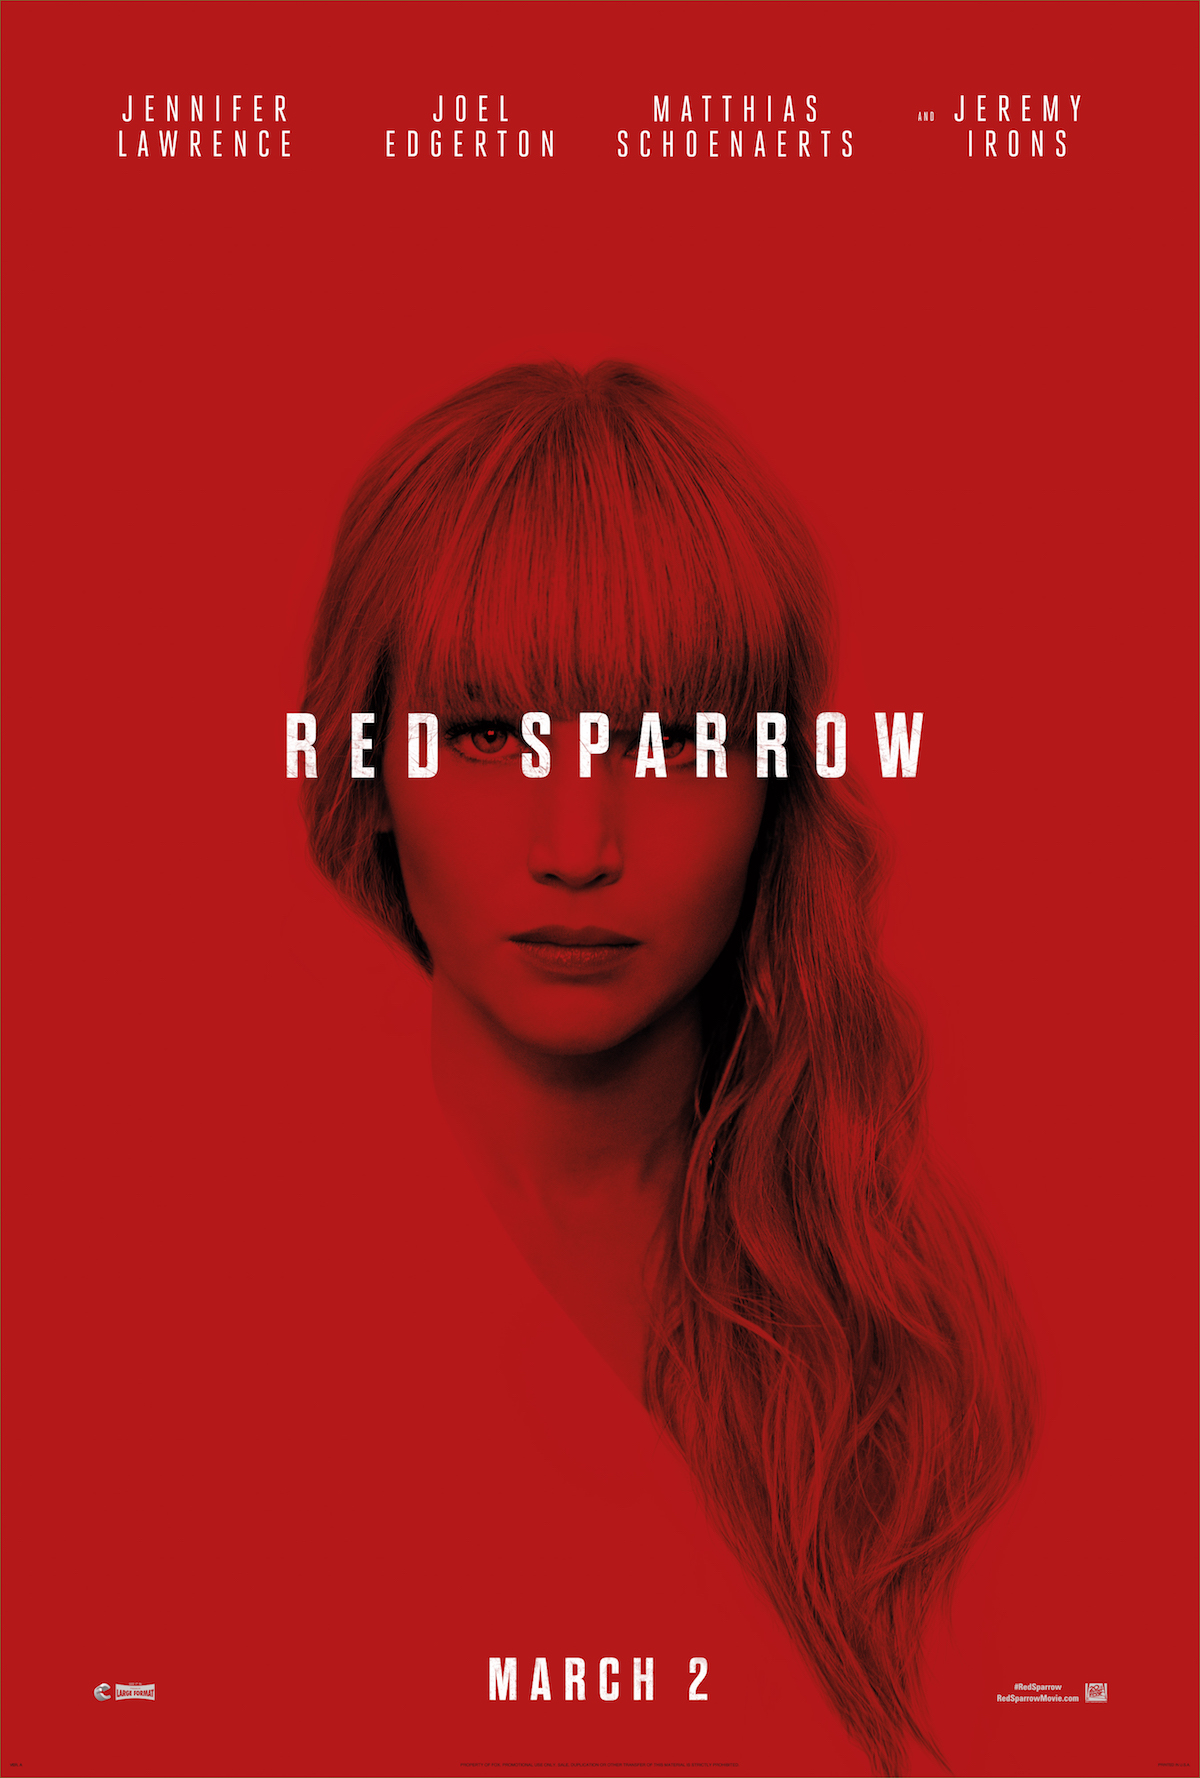 FIRST LOOK: 'Red Sparrow' Starring Jennifer Lawrence, Coming this March